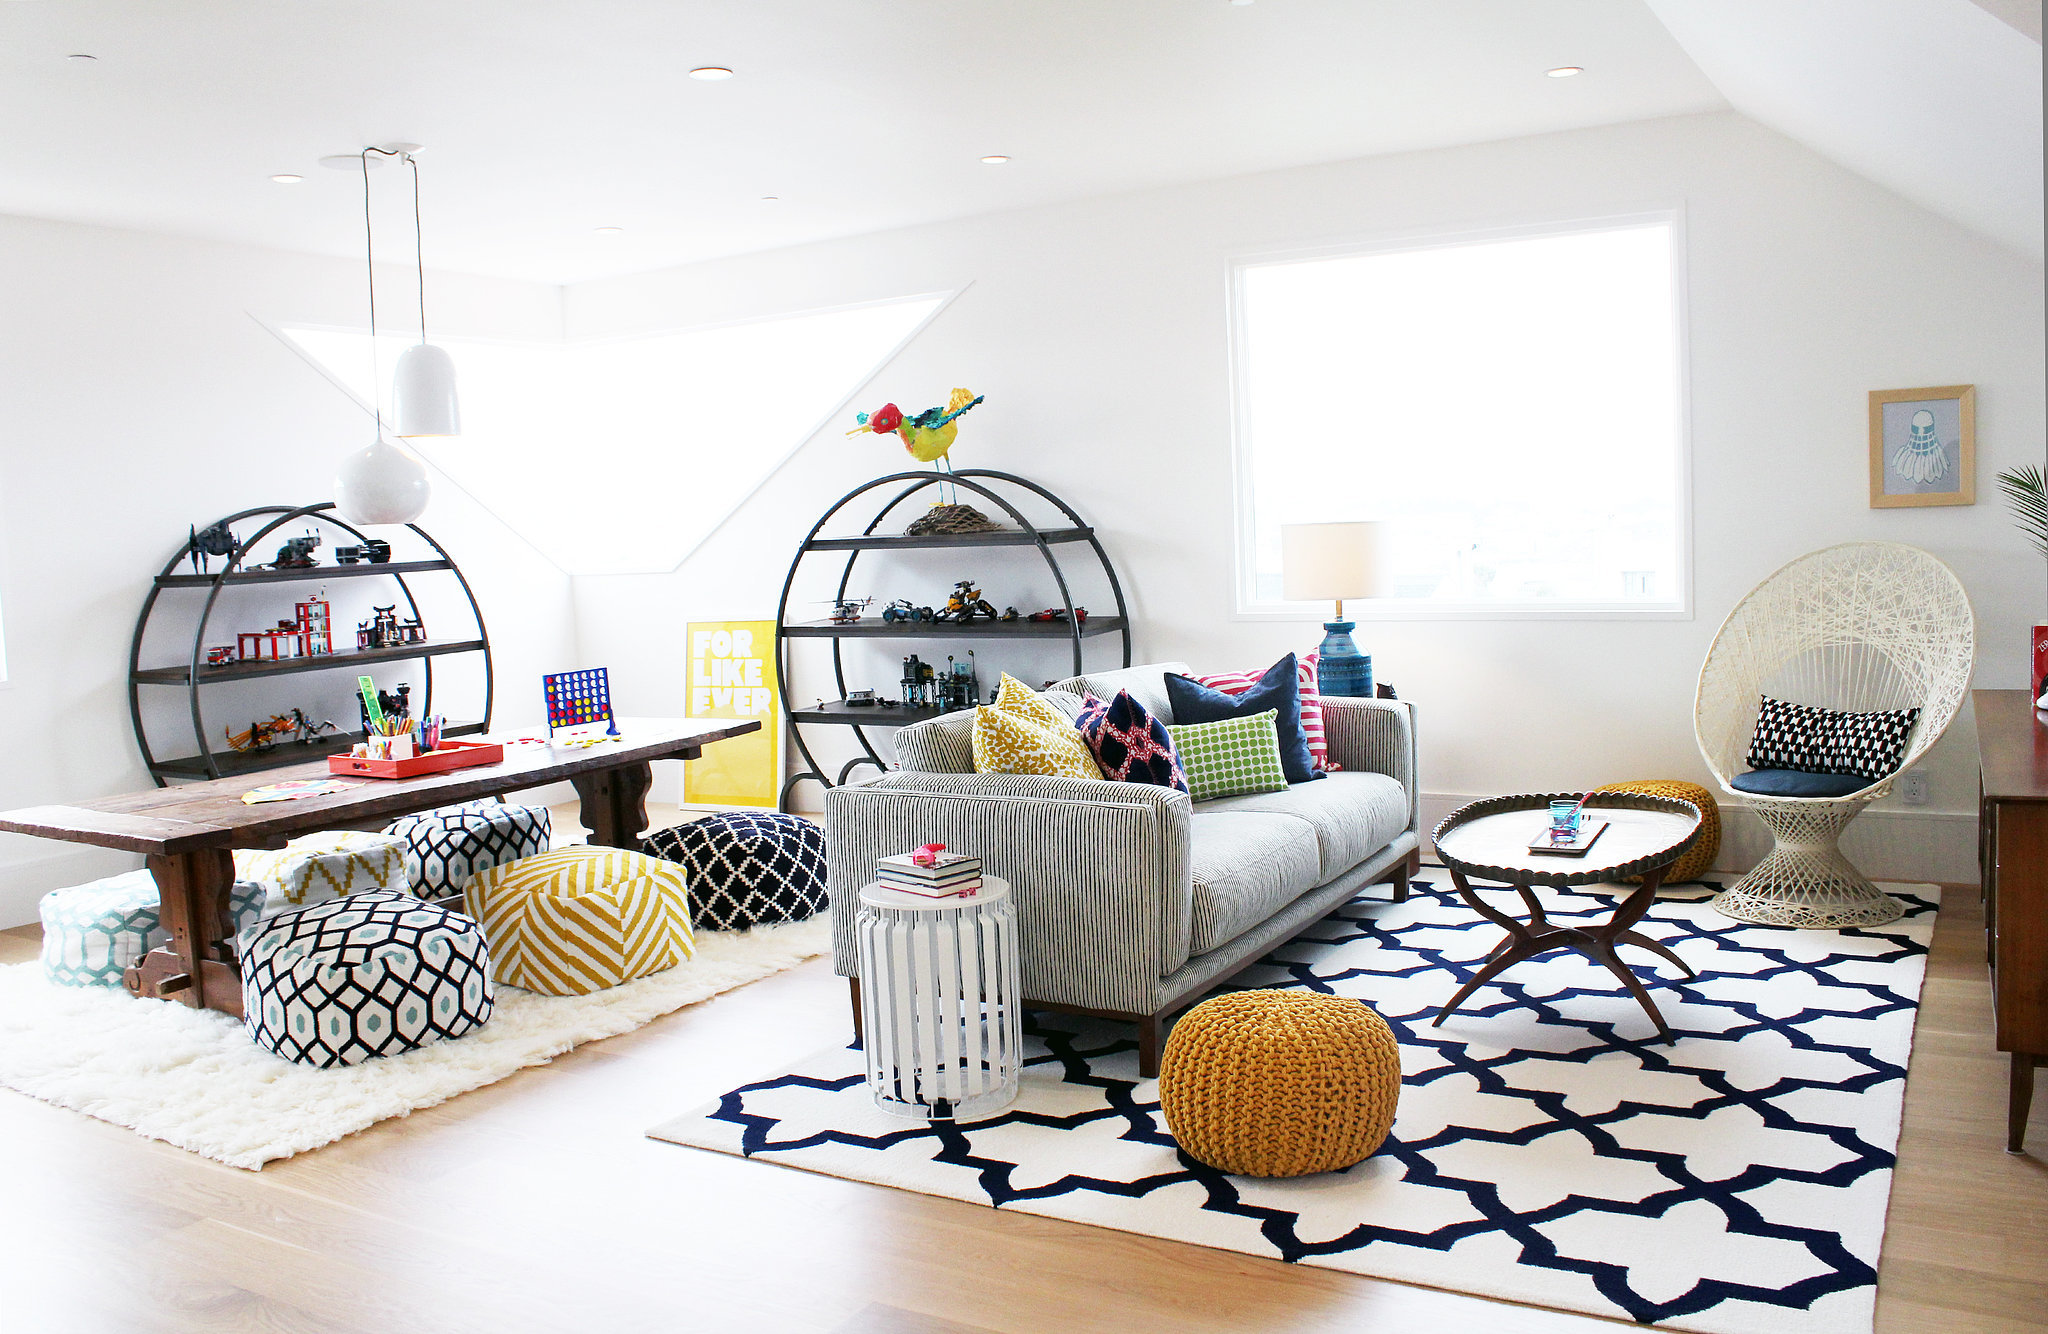 Online home decorating services popsugar home for Interior design services